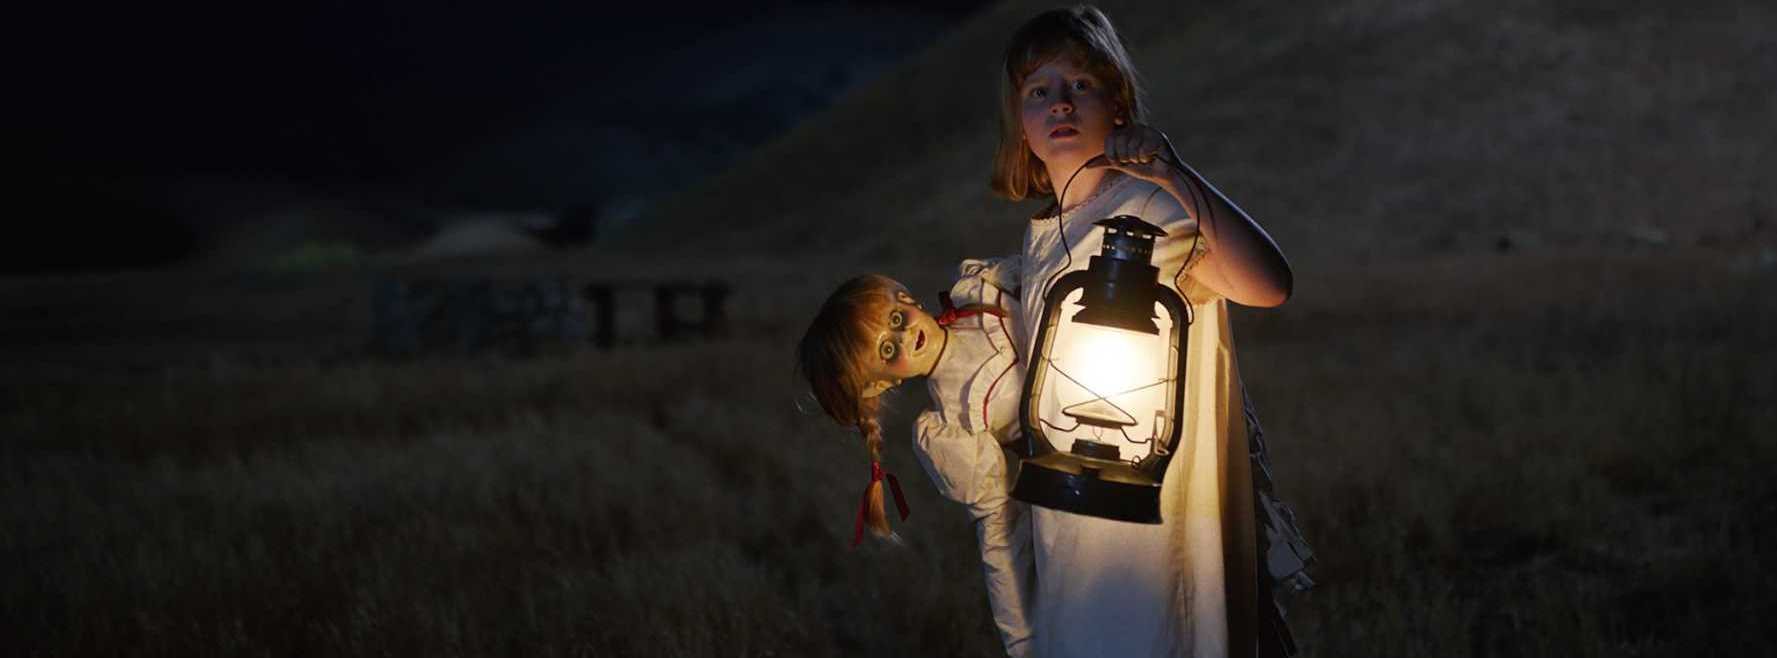 Annabelle: Creation Poster 2